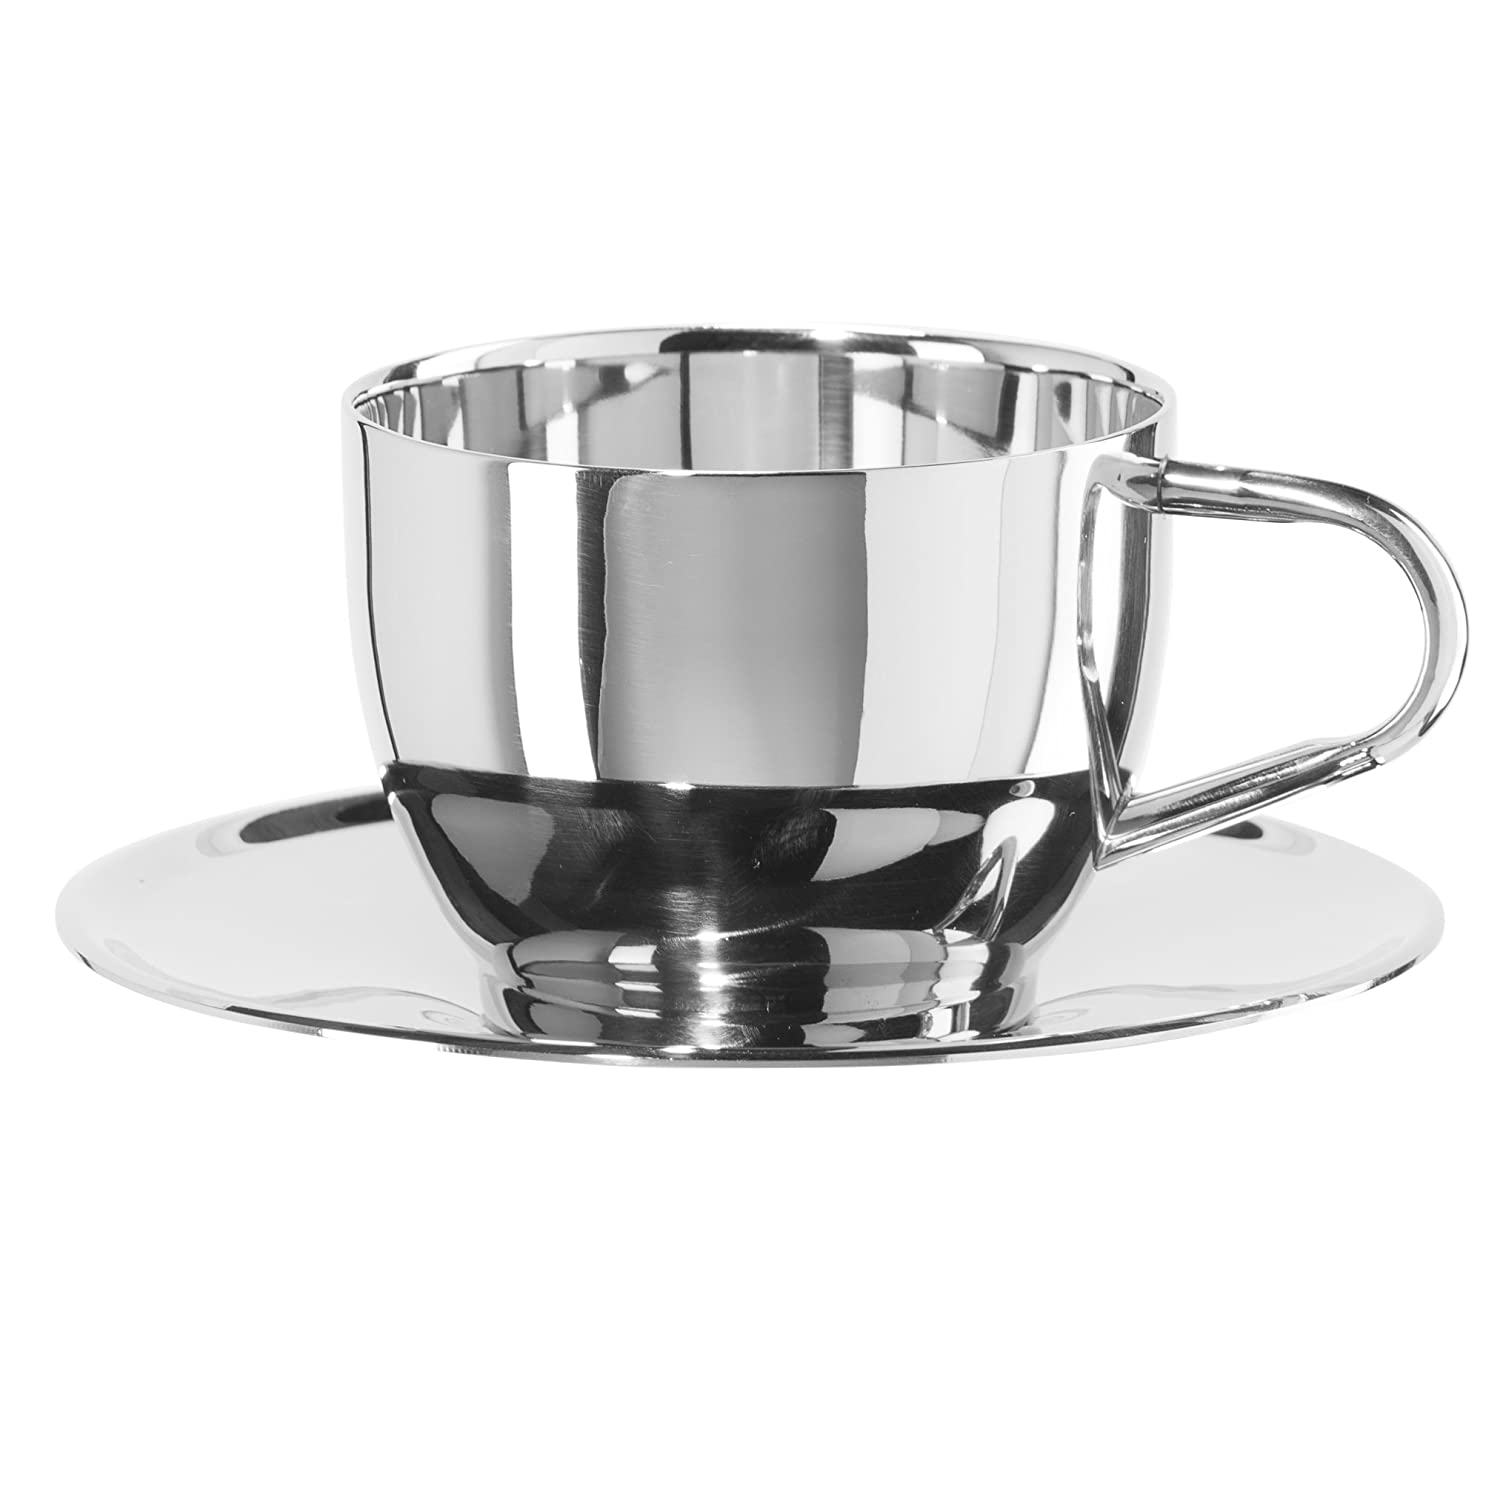 Oggi 6595.0 Double Wall Cappuccino Cup with Saucer (8 oz), Stainless